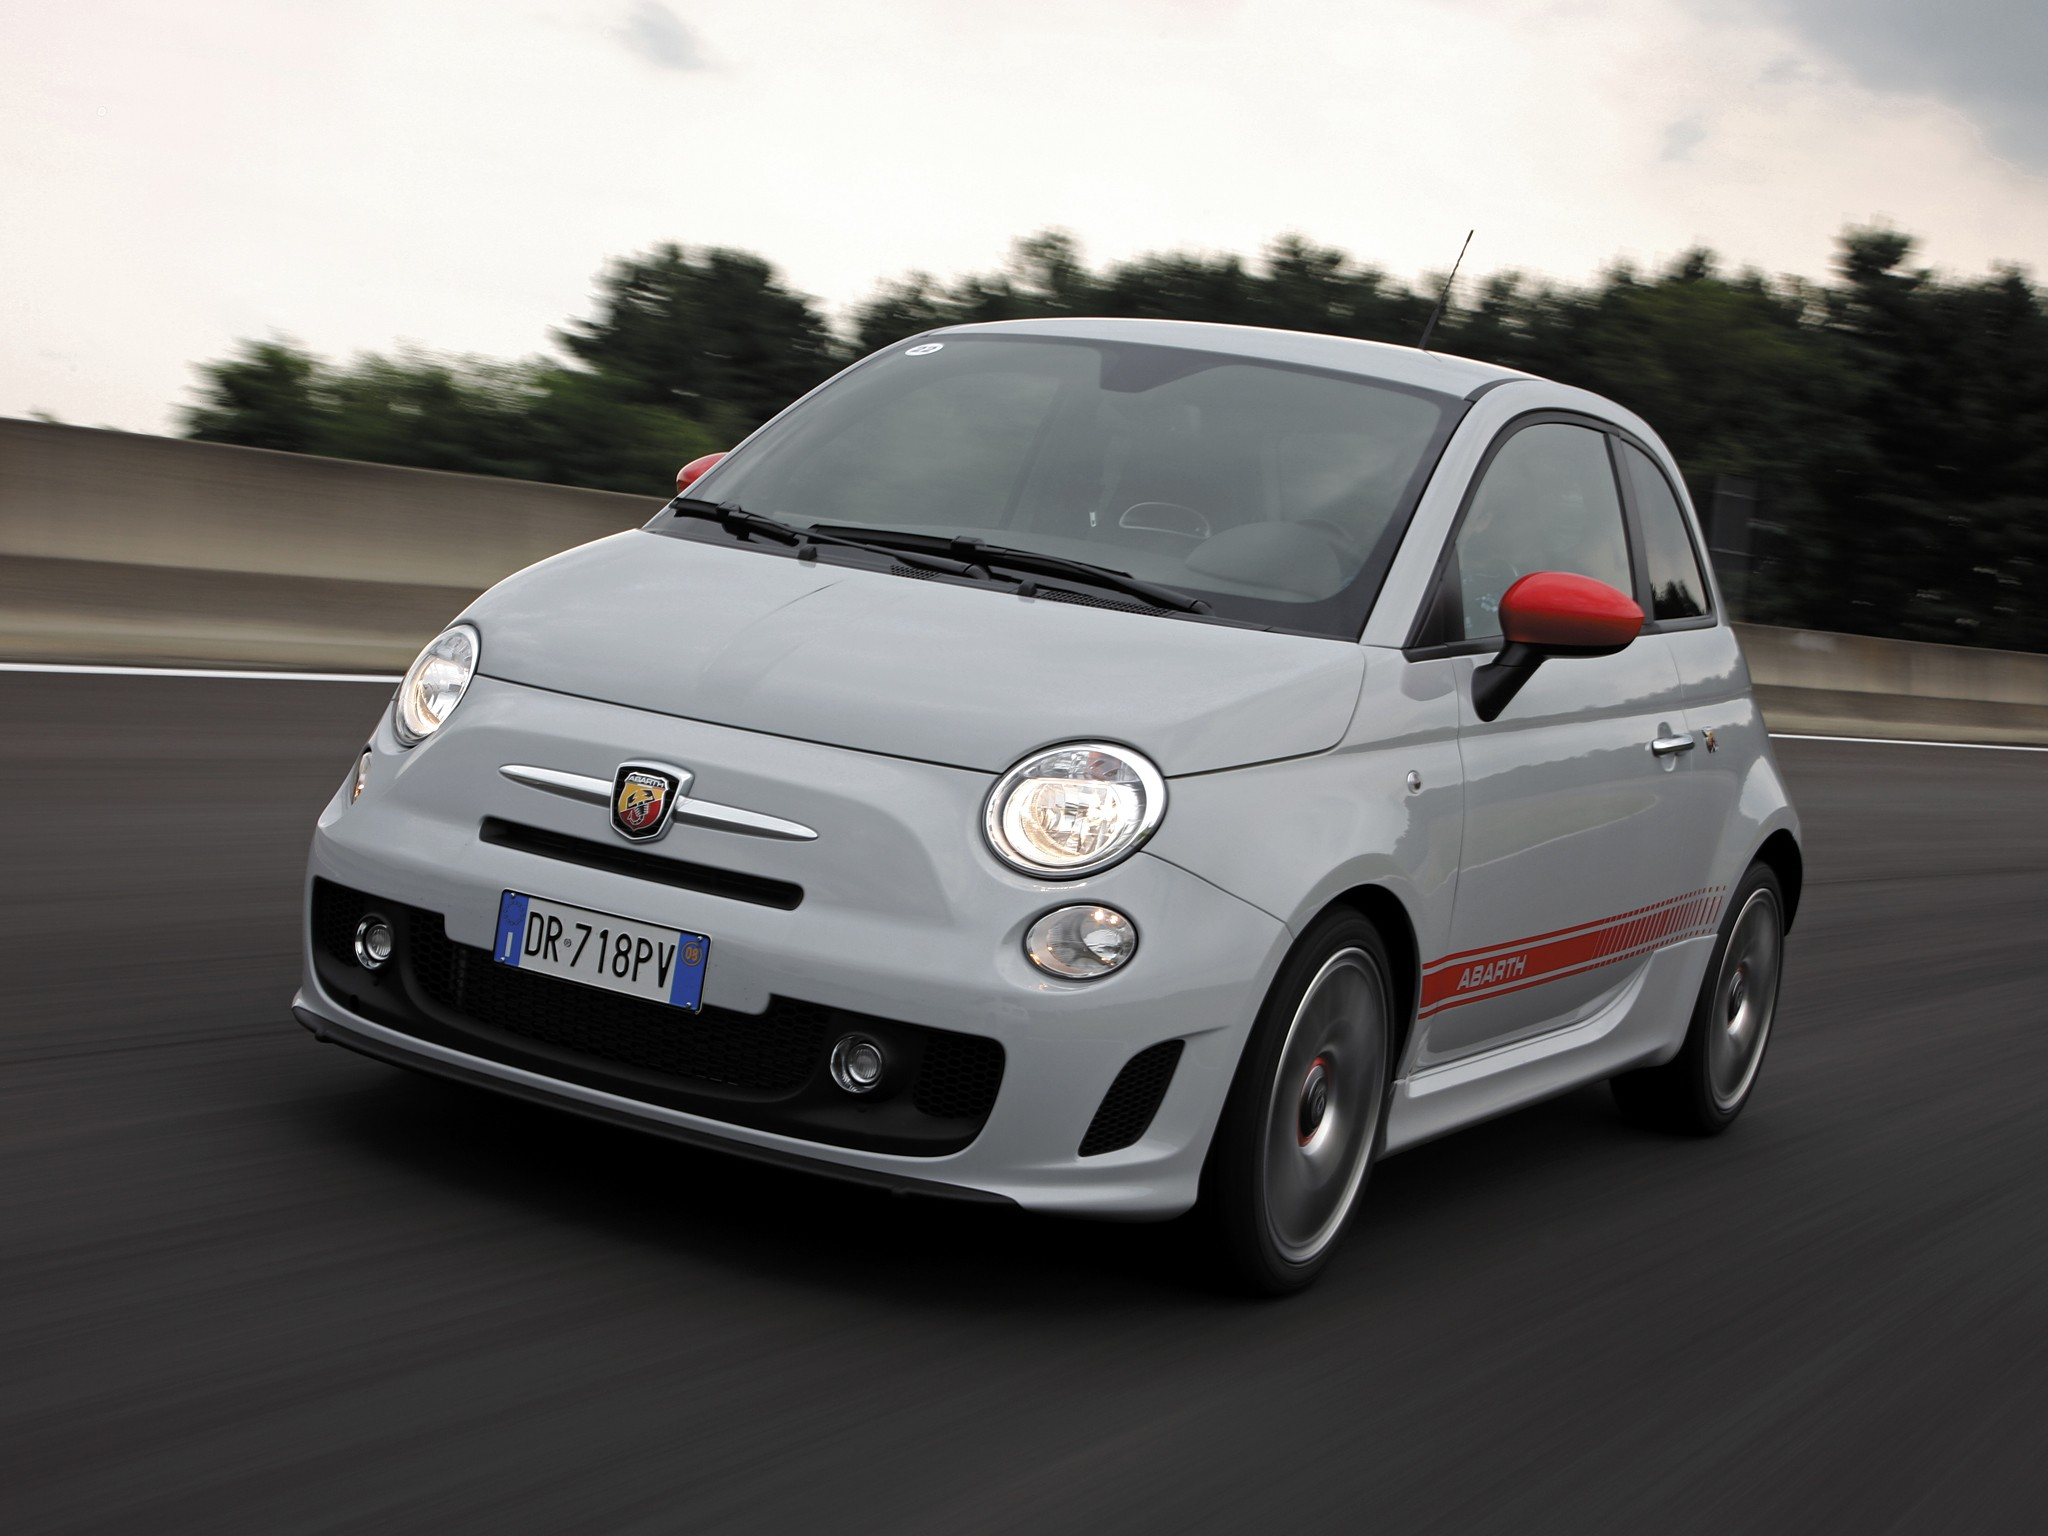 gasoline powered cars with Fiat 500 Abarth 2008 on Fuelcell vehicle moreover Ssangyong Korando 1997 moreover Kia Rio Hatchback 2009 moreover Porsche 911 Carrera 4 996 2001 besides Toyota Prius 1997.